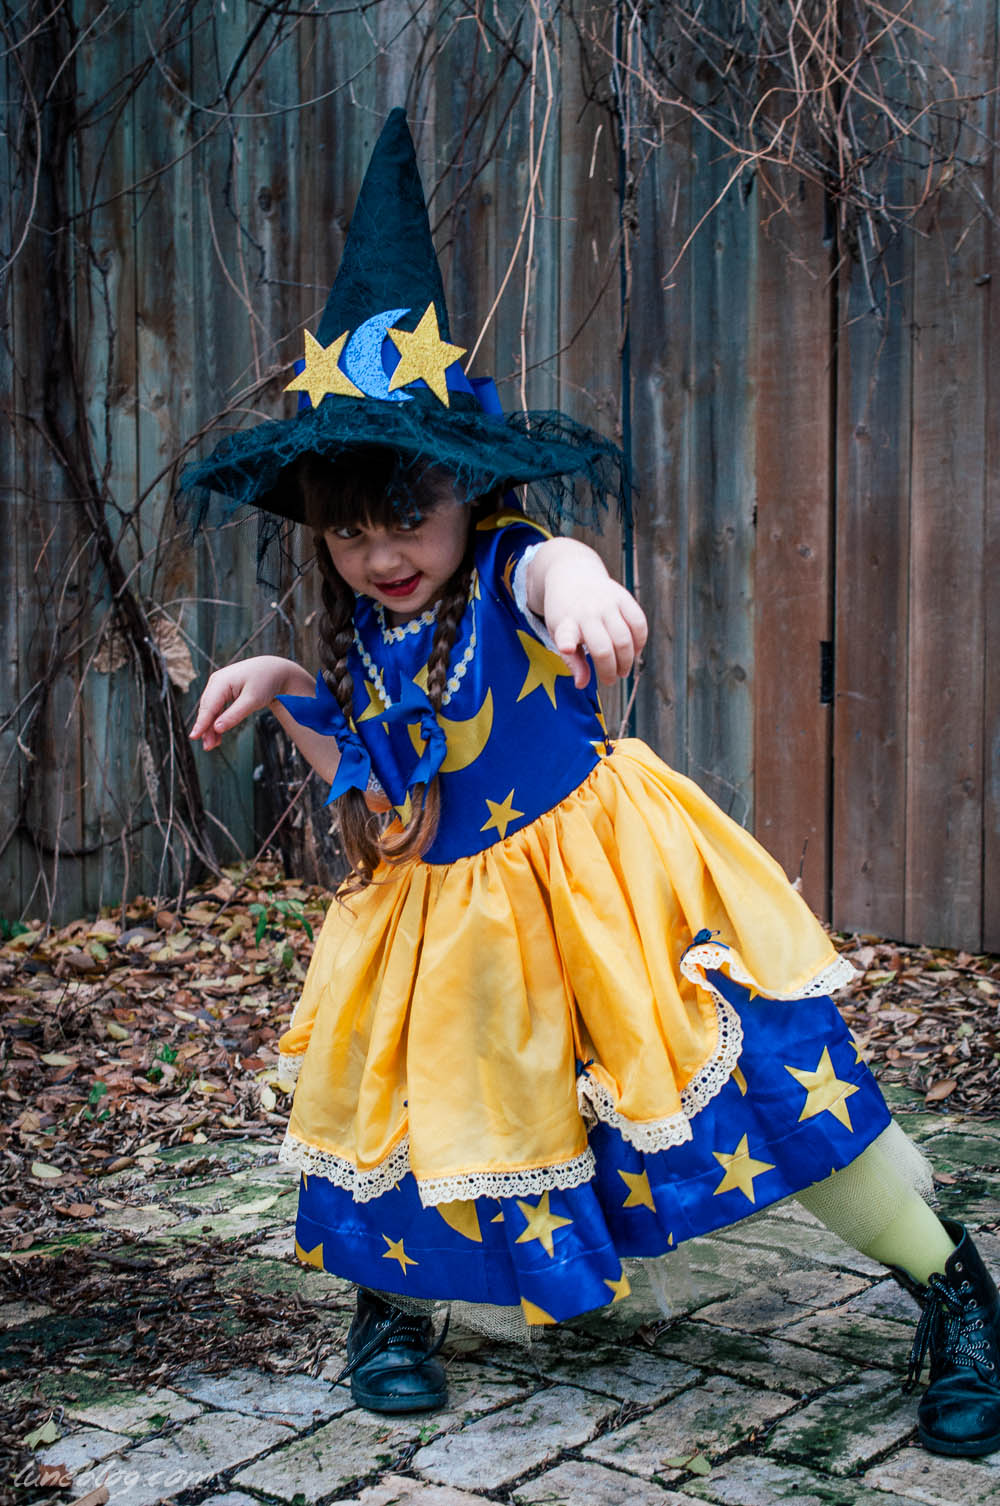 halloween costumes 2015 lune travels blog (19 of 39).jpg